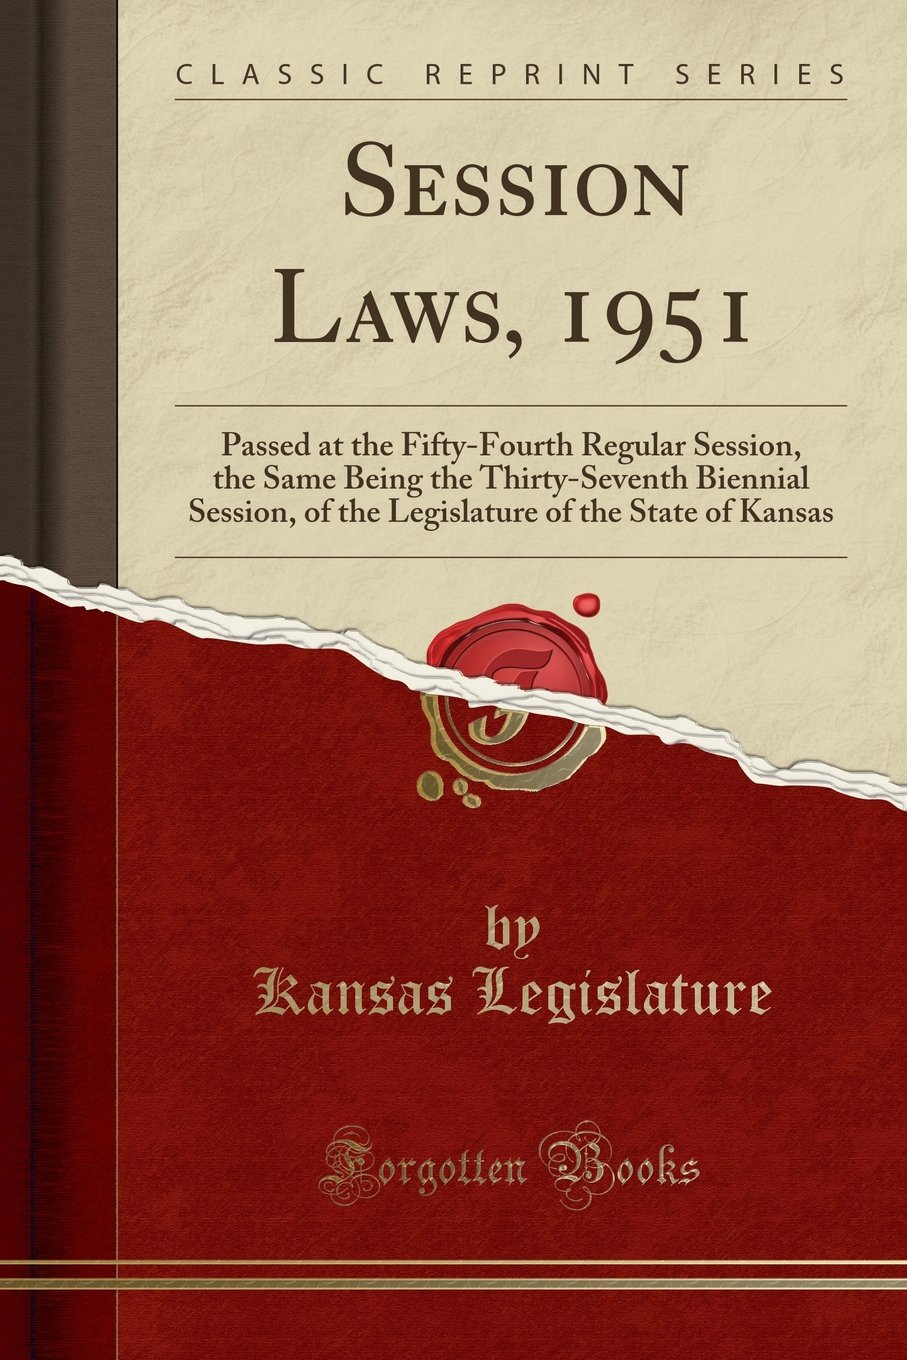 Download Session Laws, 1951: Passed at the Fifty-Fourth Regular Session, the Same Being the Thirty-Seventh Biennial Session, of the Legislature of the State of Kansas (Classic Reprint) pdf